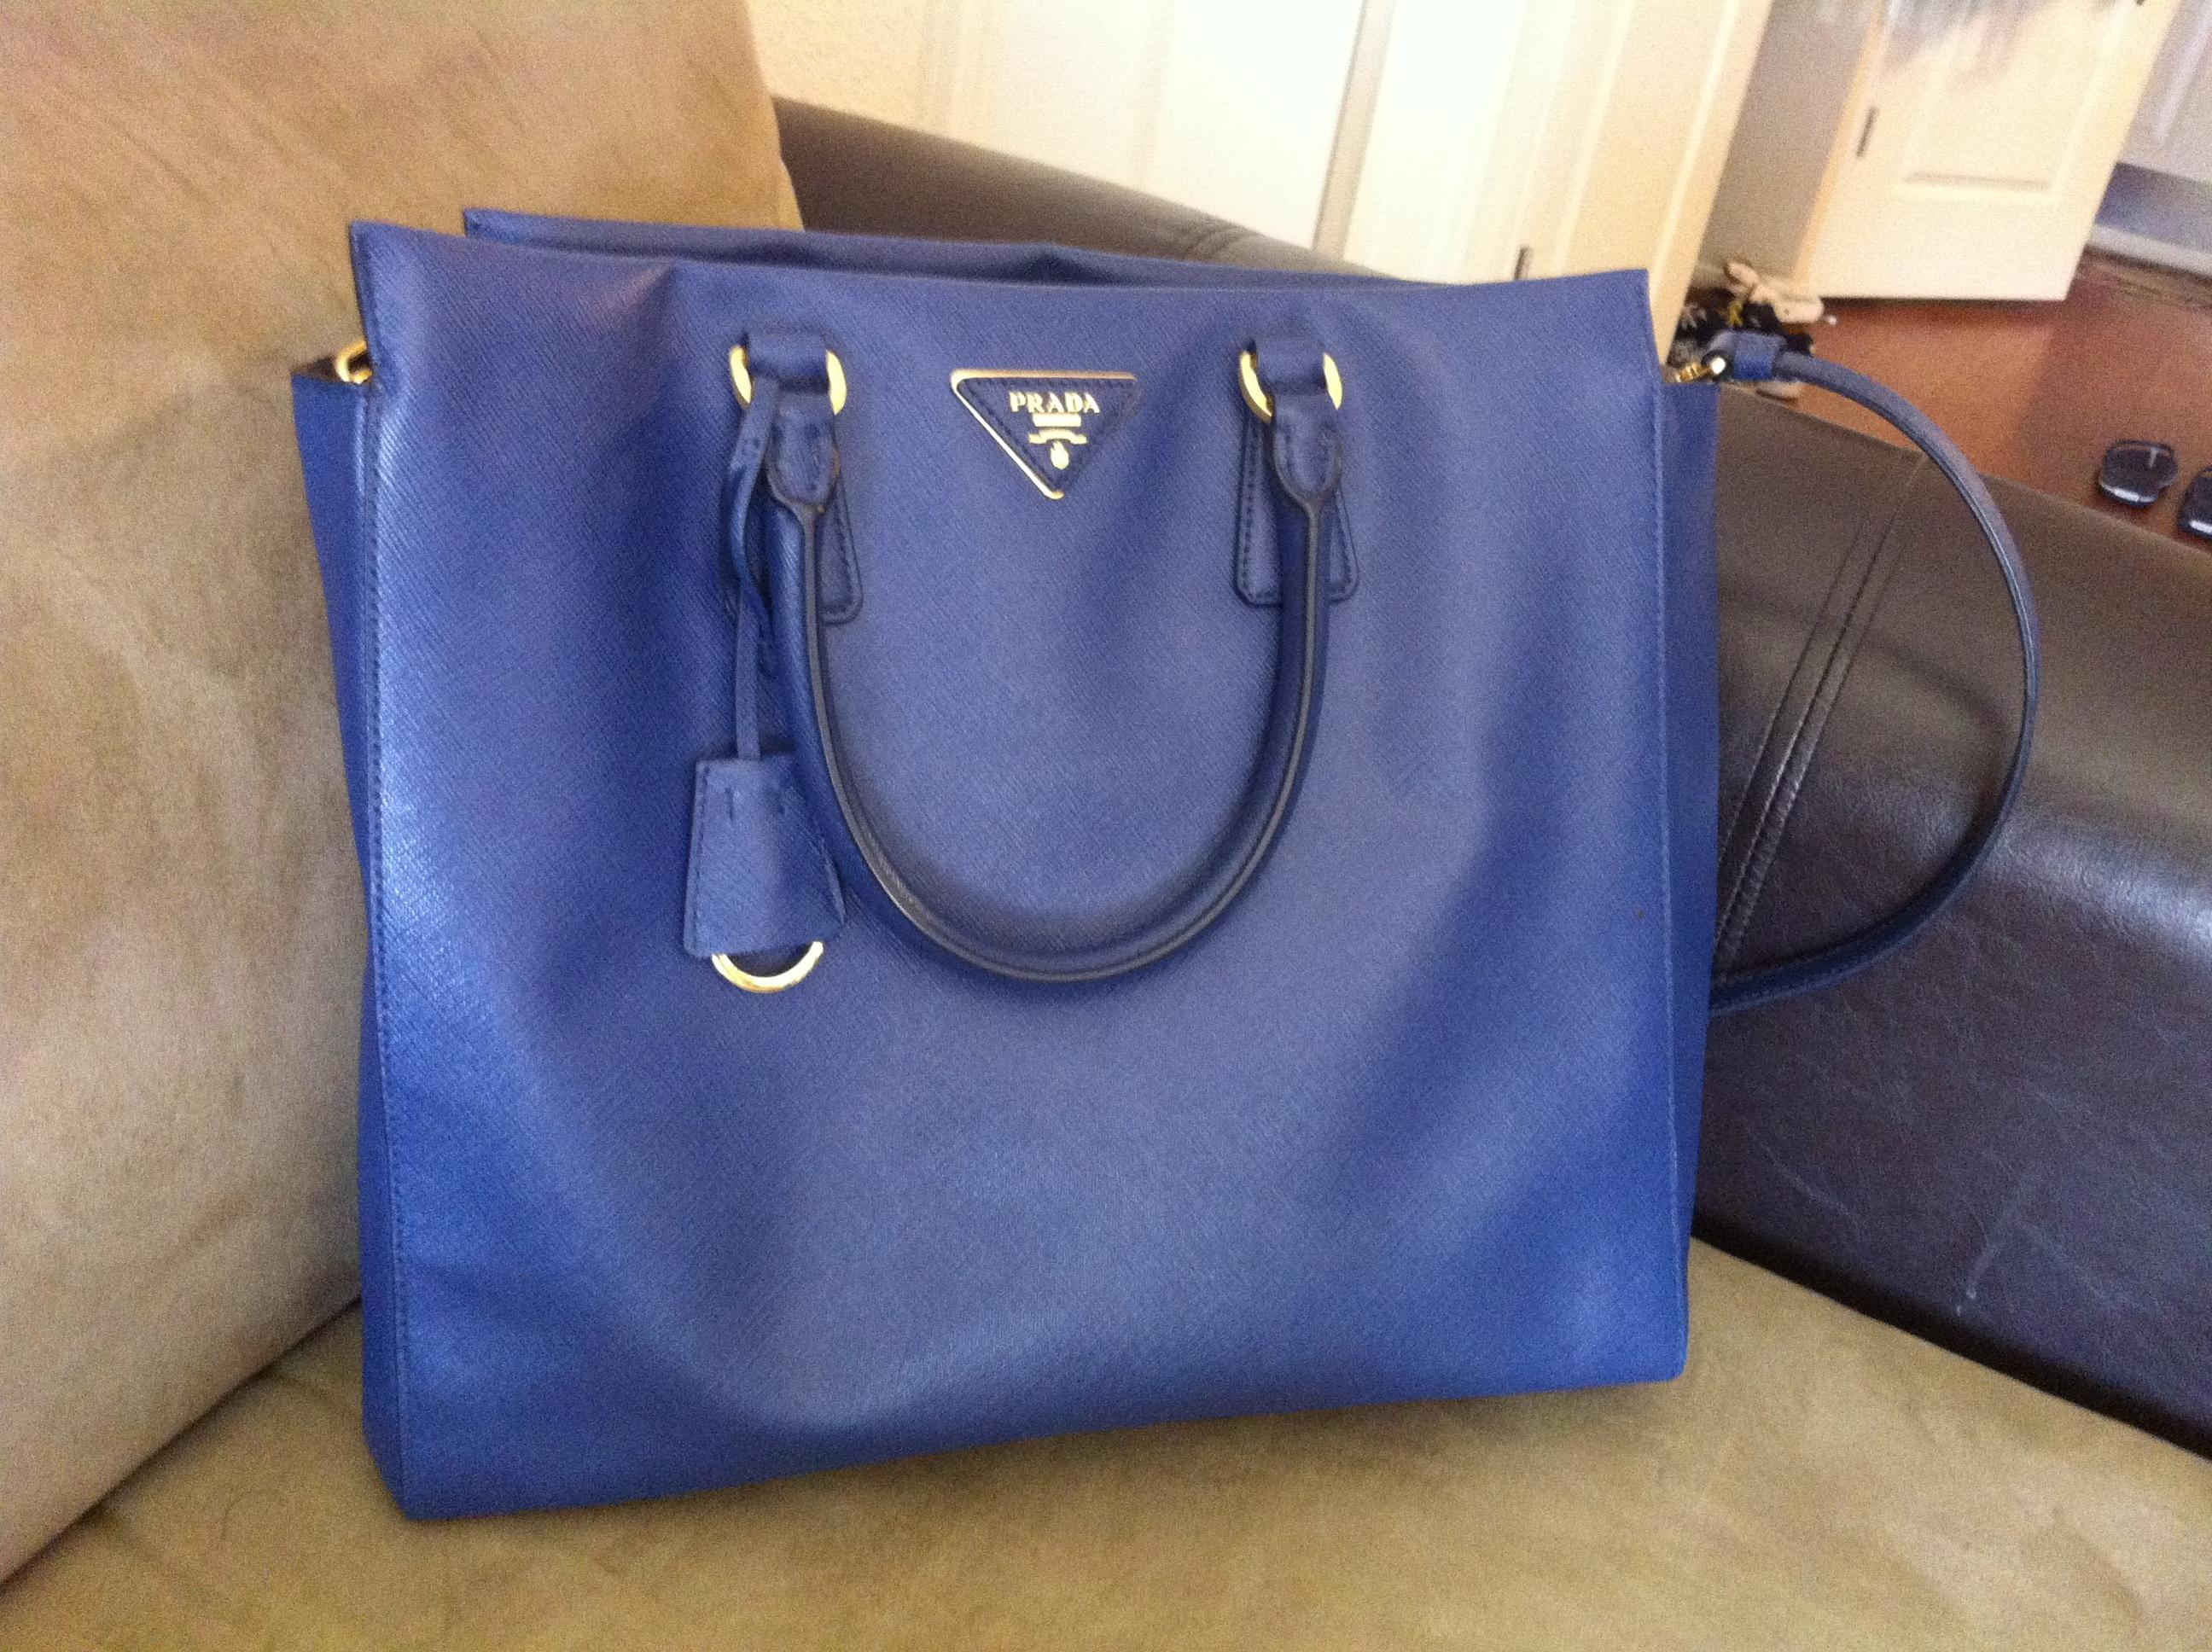 5ddddc24b3bc where to buy prada shoulder bedford blue purple cf231 4d480